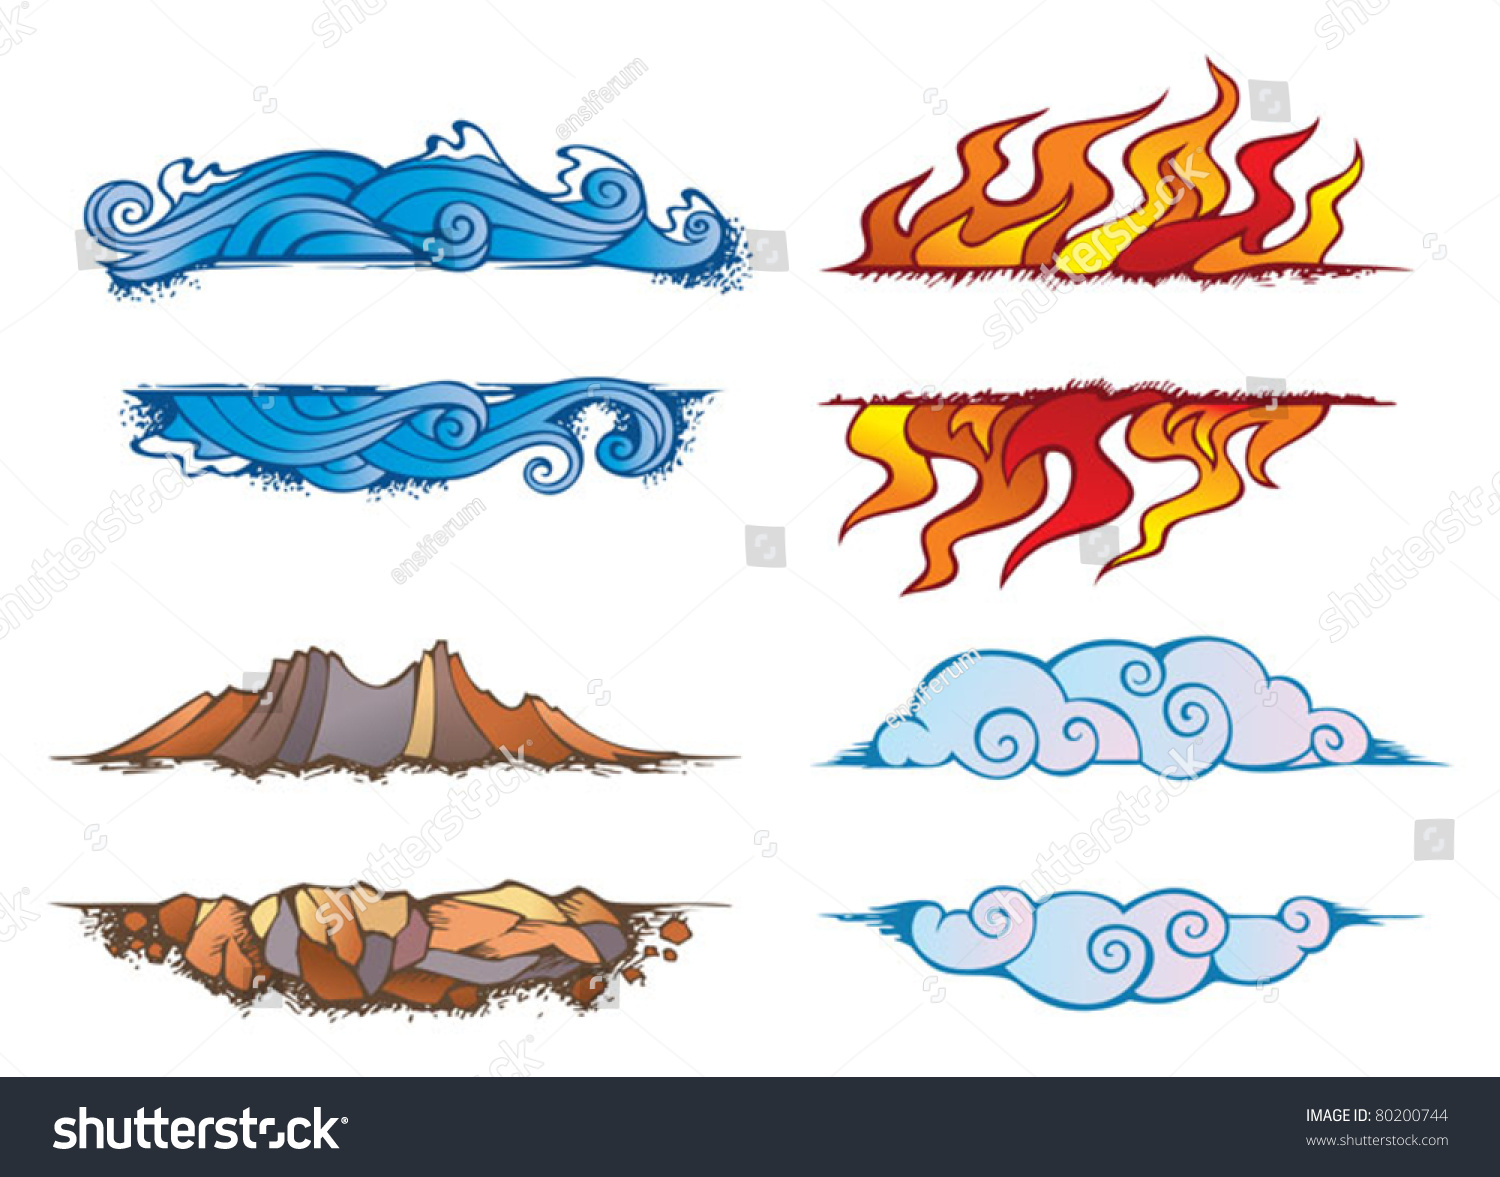 Chinese Symbol For Earth Wind Fire And Water Gallery For